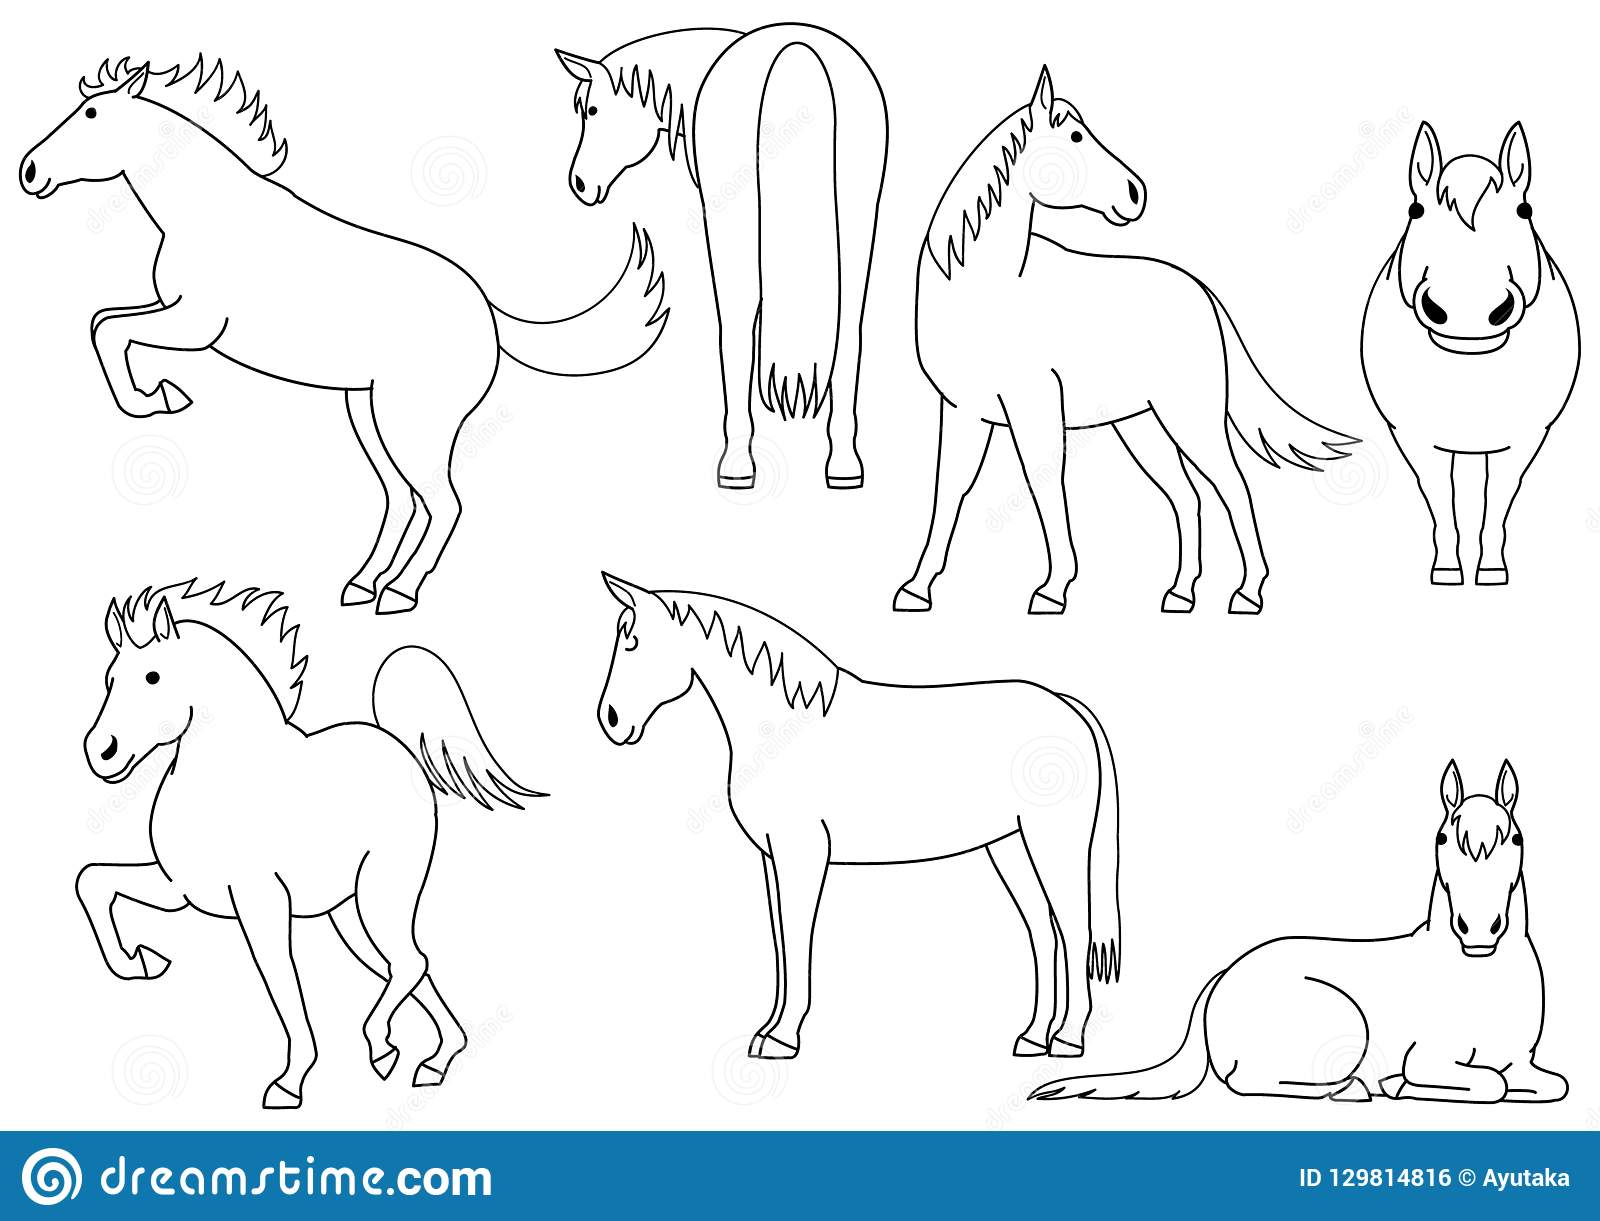 Cute And Simple Horse Doodle Drawing Set Stock Vector Illustration Of Full Back 129814816